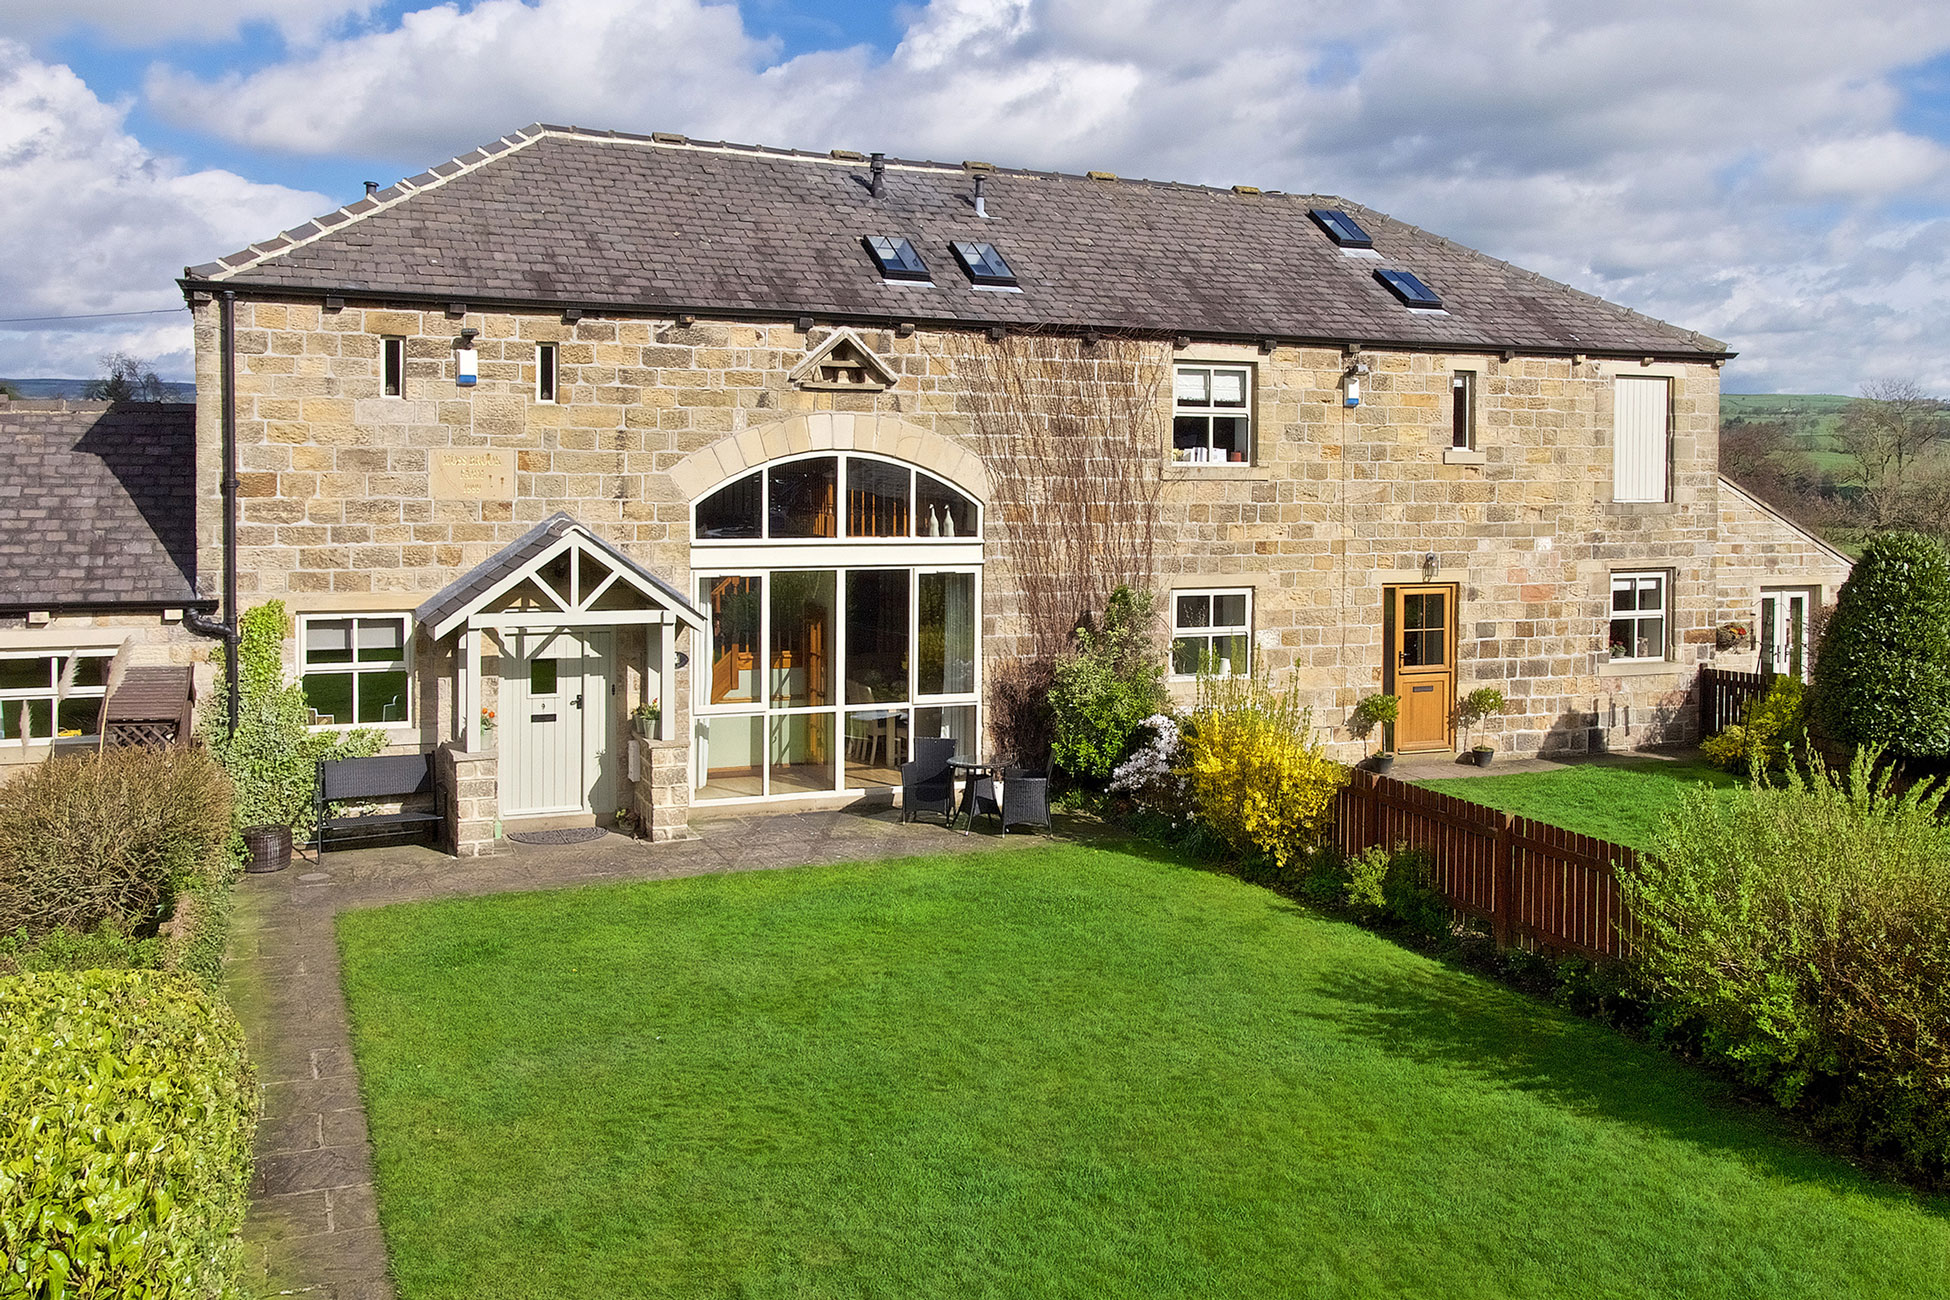 Elevated photography, property frontage + garden Yorkshire